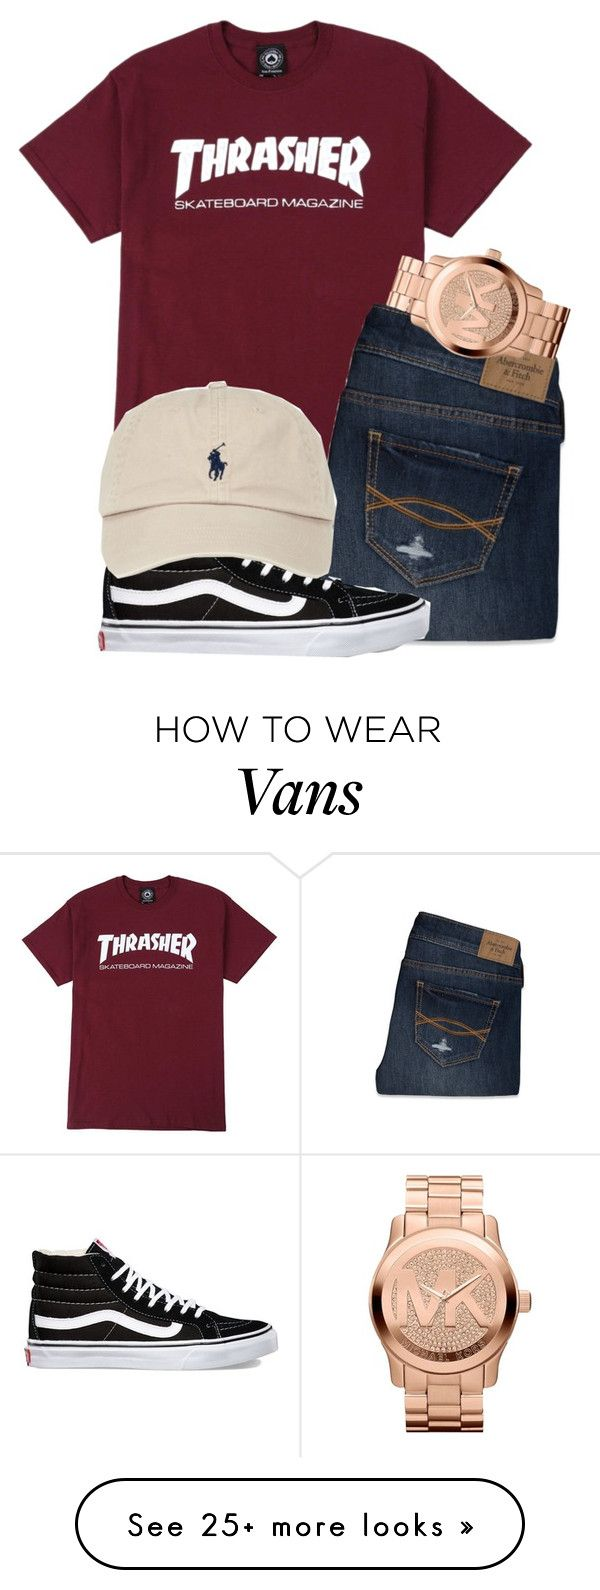 """untitled 103"" by mmapp on Polyvore featuring Abercrombie & Fitch, Michael Kors, Vans, POLO, vans, michaelkors and 2016"